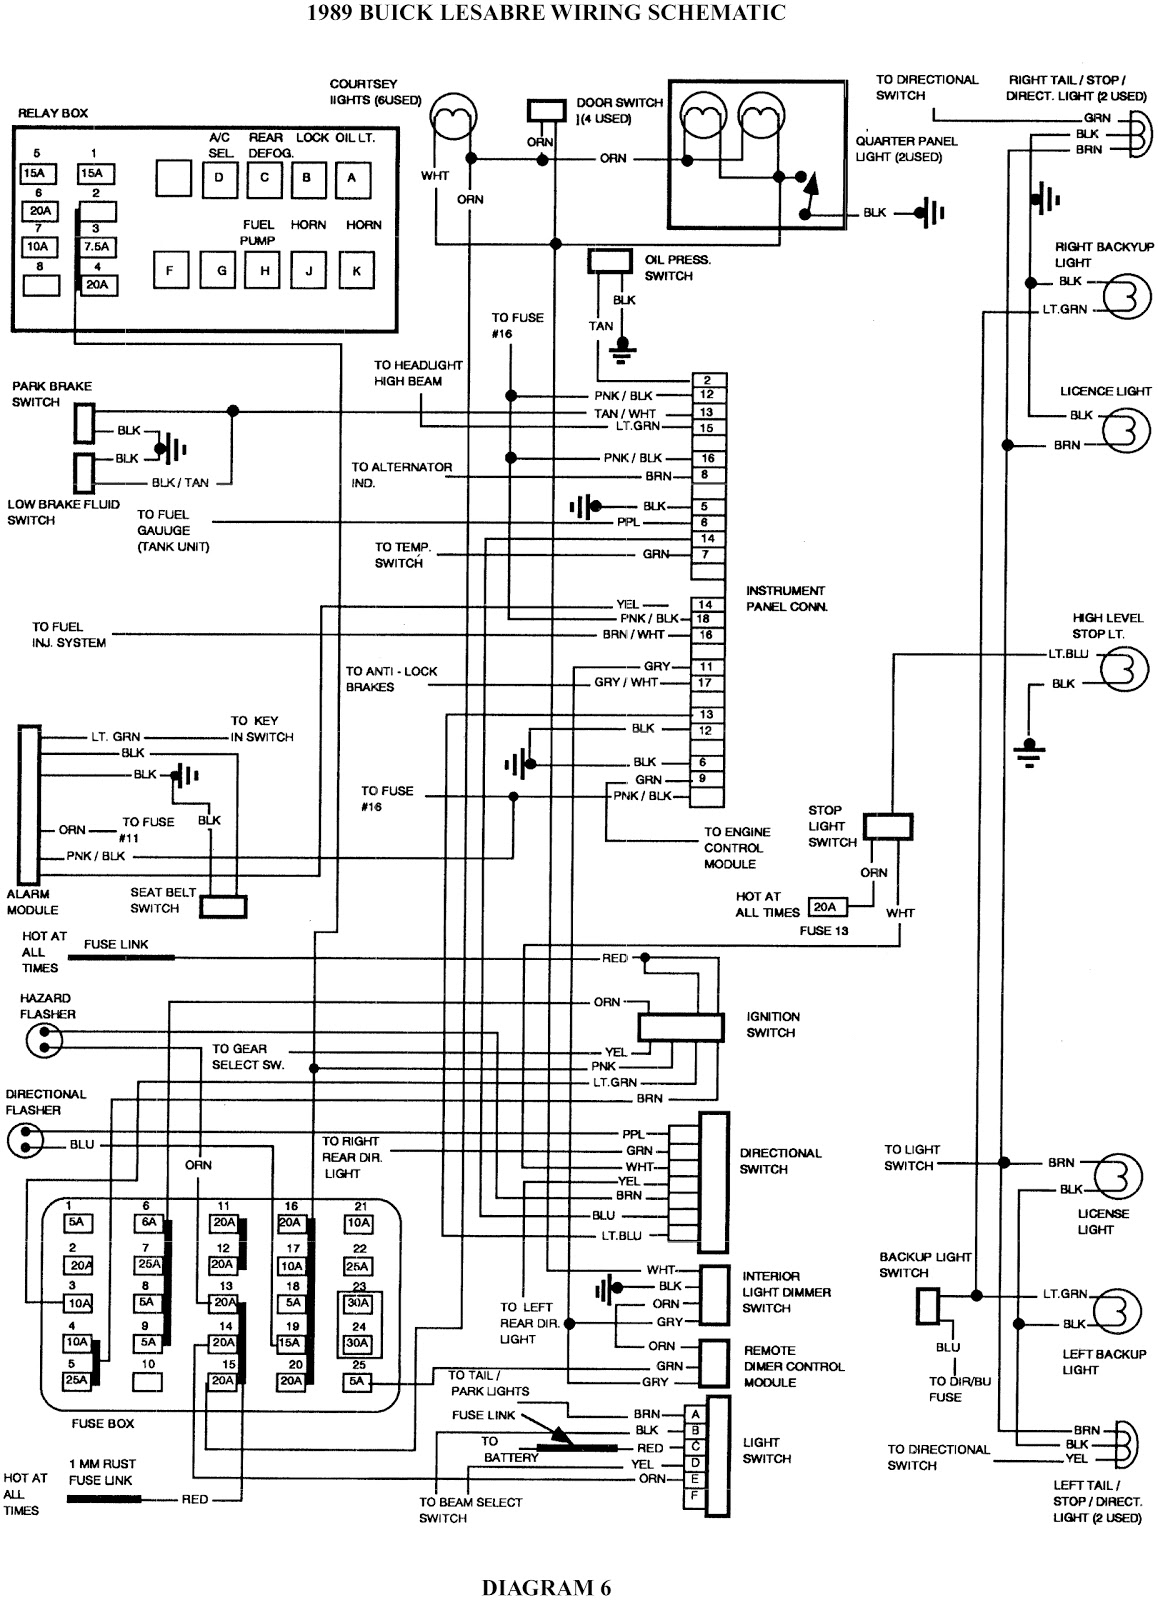 ShowAssembly in addition 97 Grand Am Wiring Diagram furthermore 5i69m Pontiac Montana 2005 Pontiac Montana Drivers Heated moreover P 0900c152800680c1 moreover Original In 2007 Pontiac G6 Wiring Diagram. on 2000 pontiac sunfire radio wiring diagram